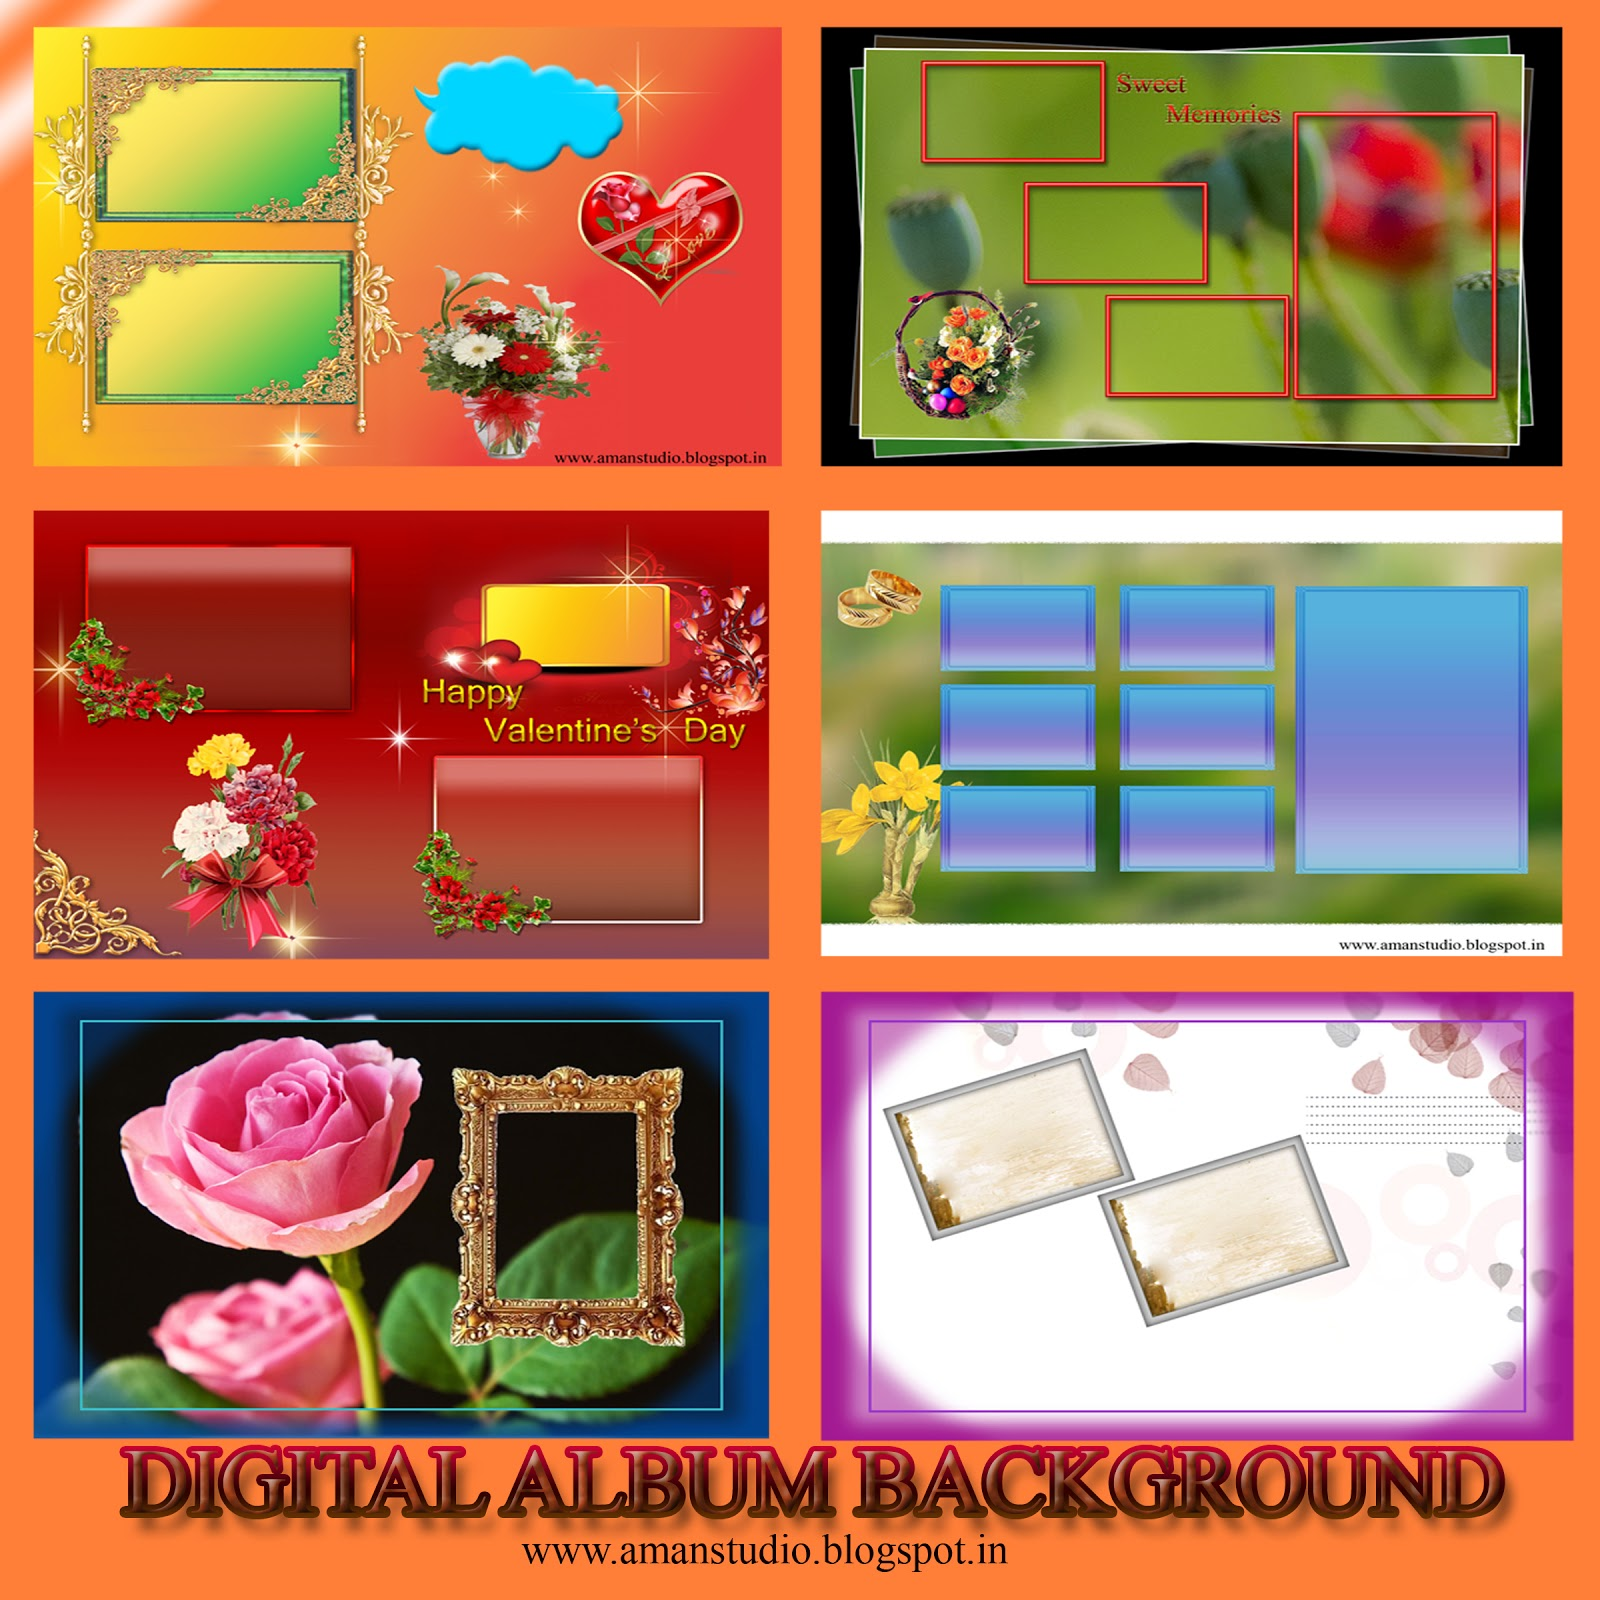 Digital Album Background psd & jpeg